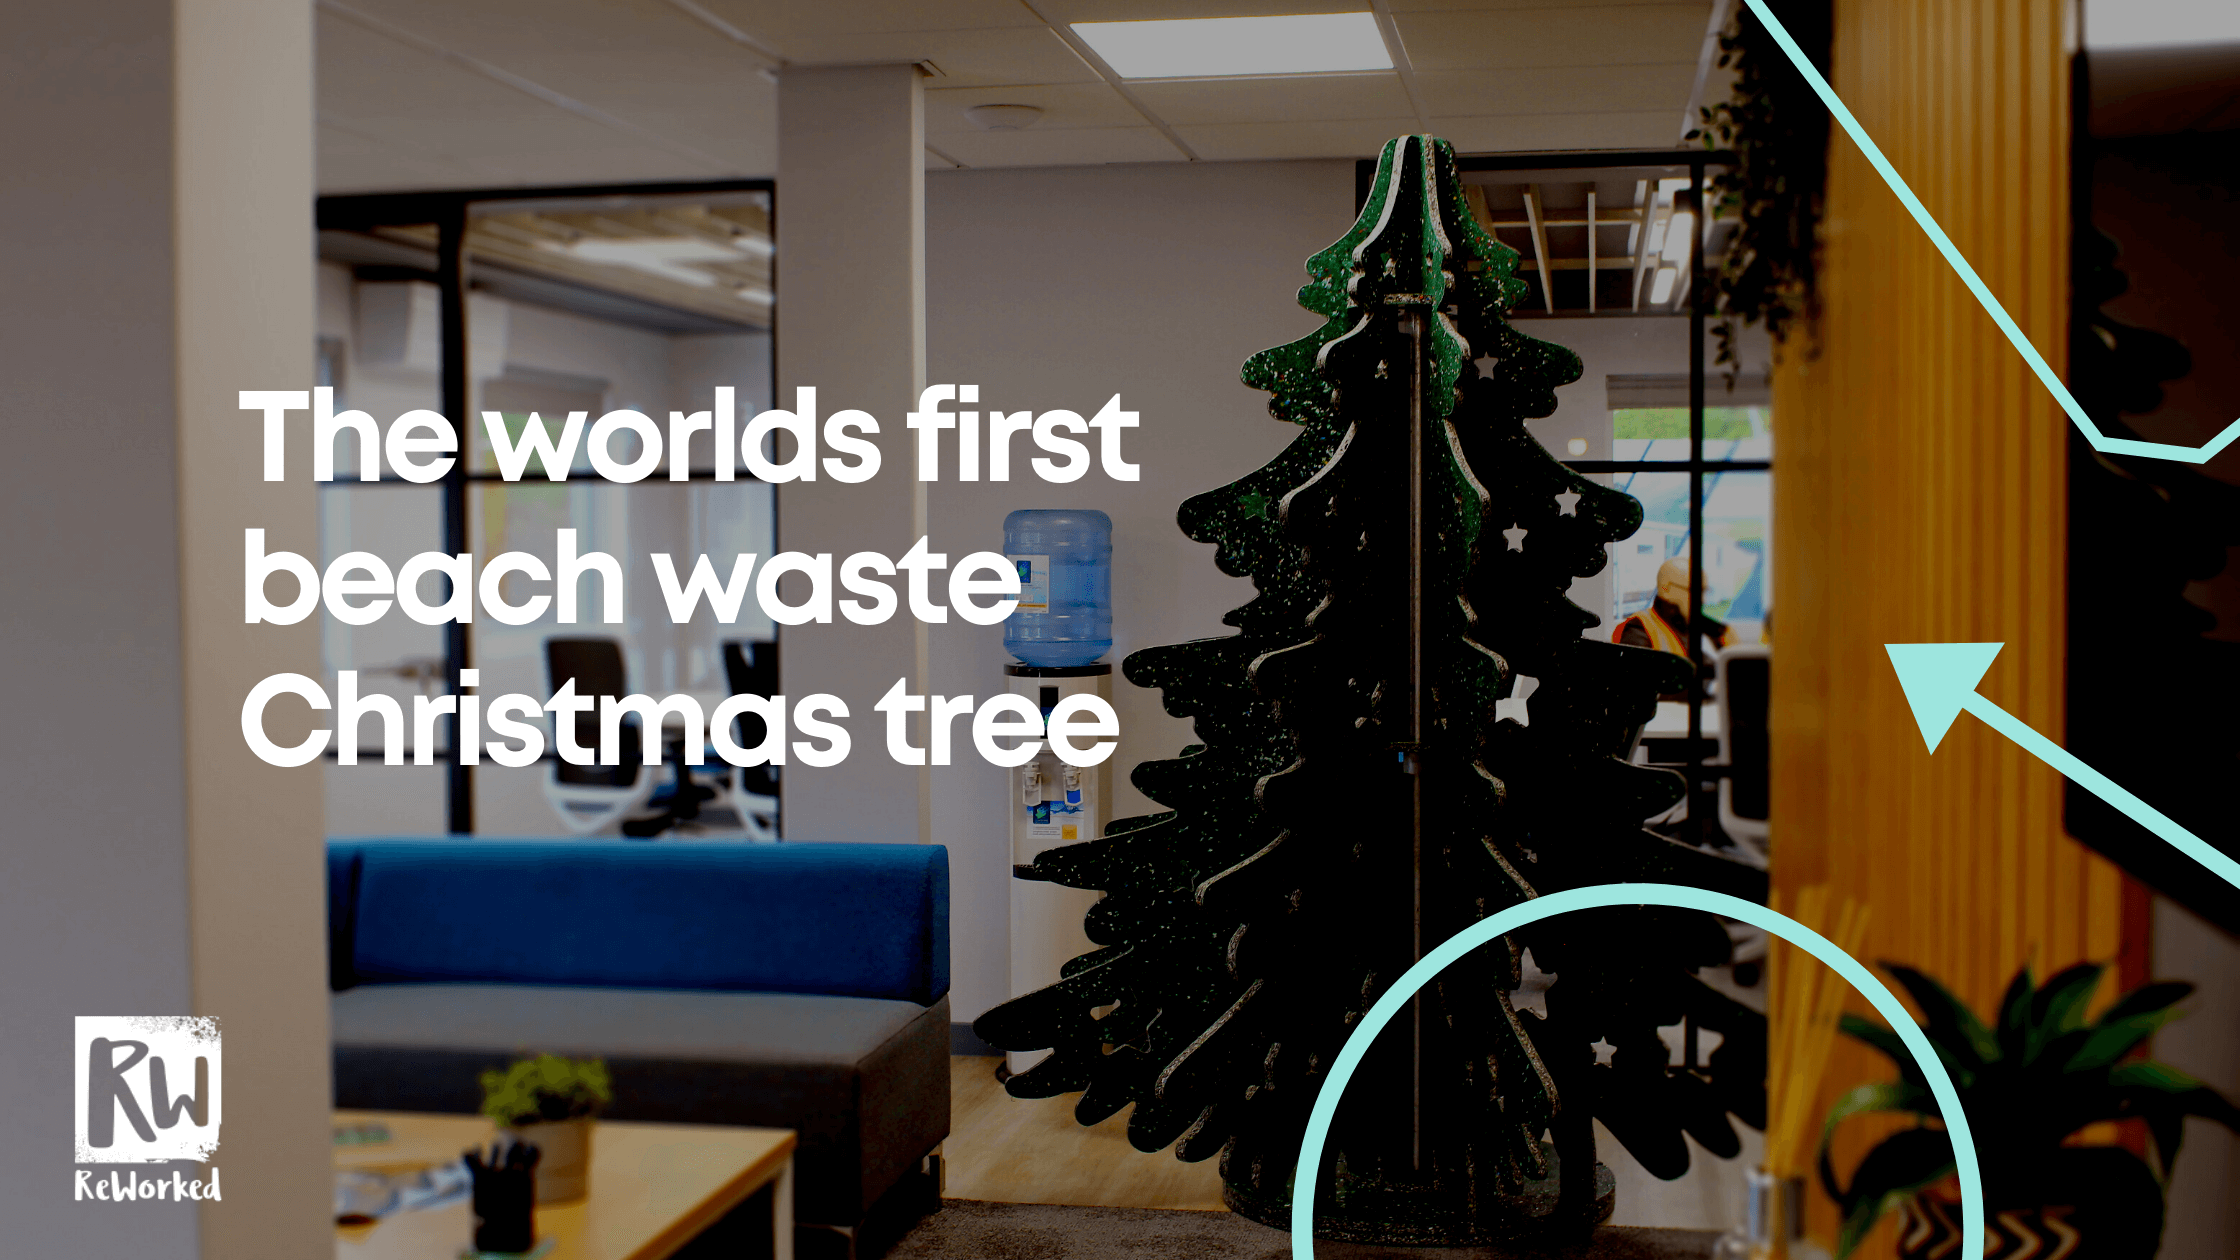 The worlds first beach waste Christmas tree